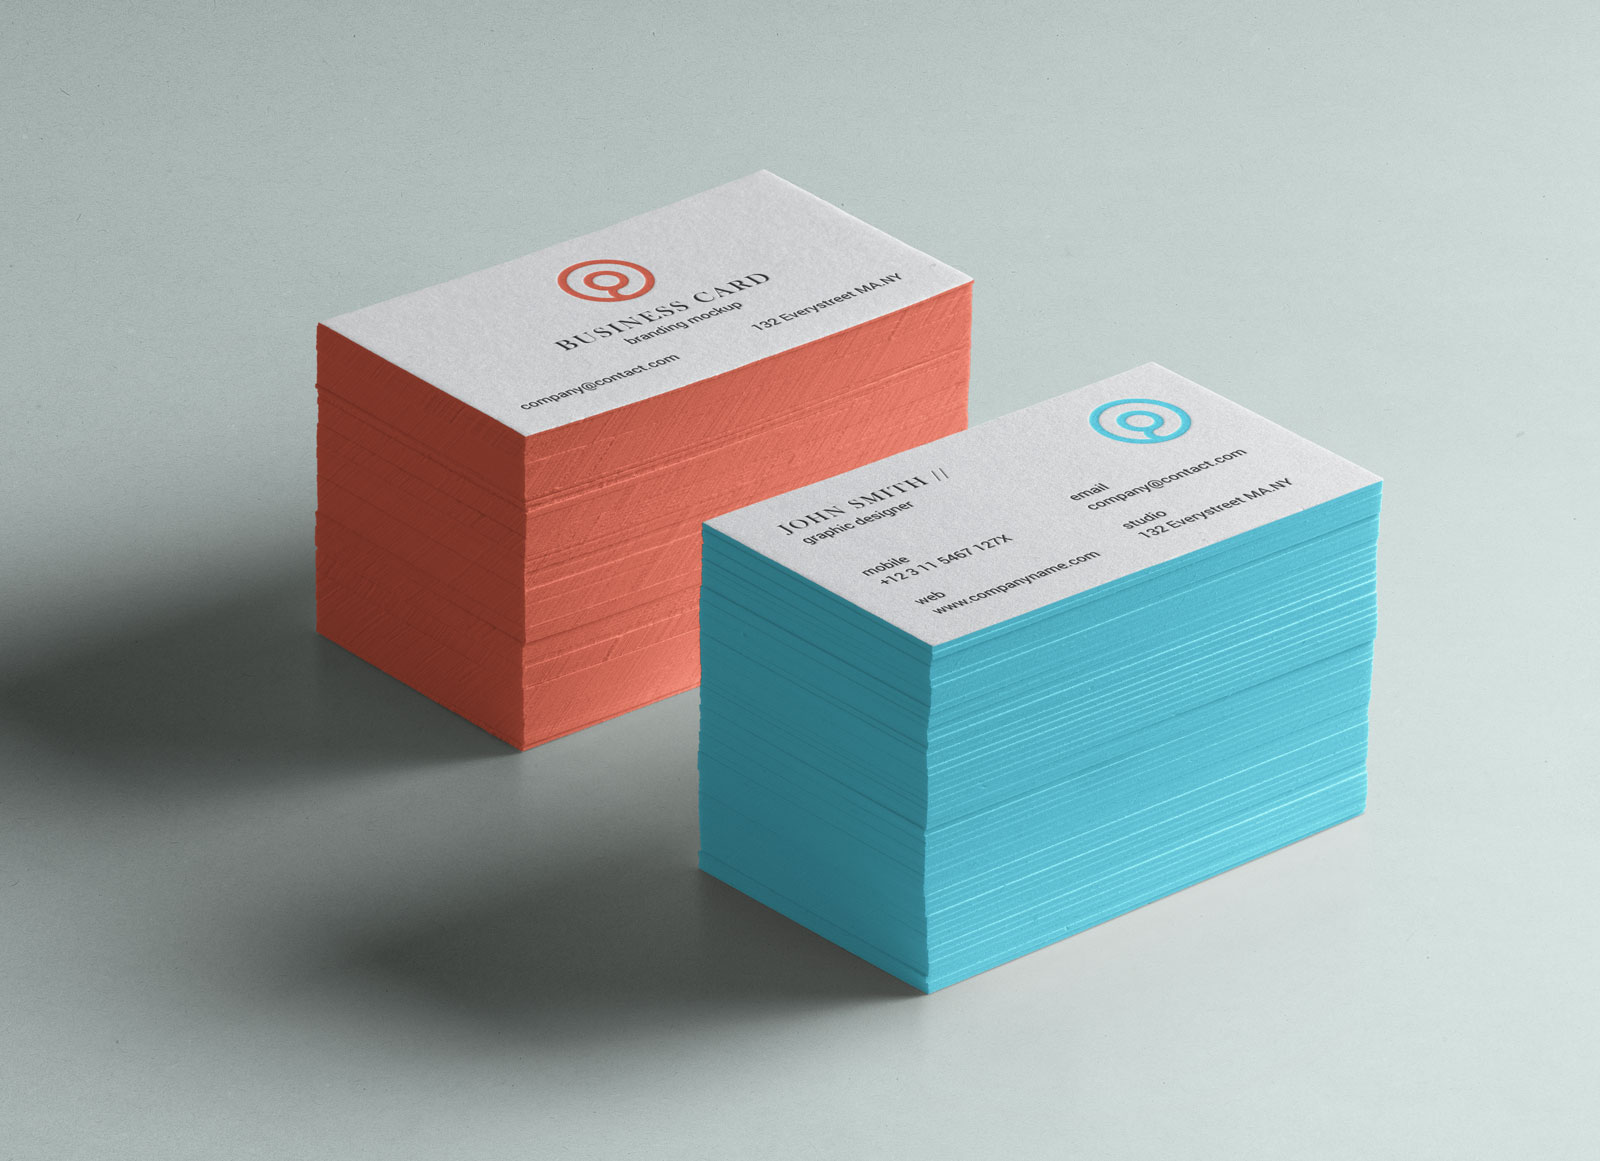 Free letterpressed business card with color edge mockup psd good free letterpressed business card mockup psd reheart Choice Image